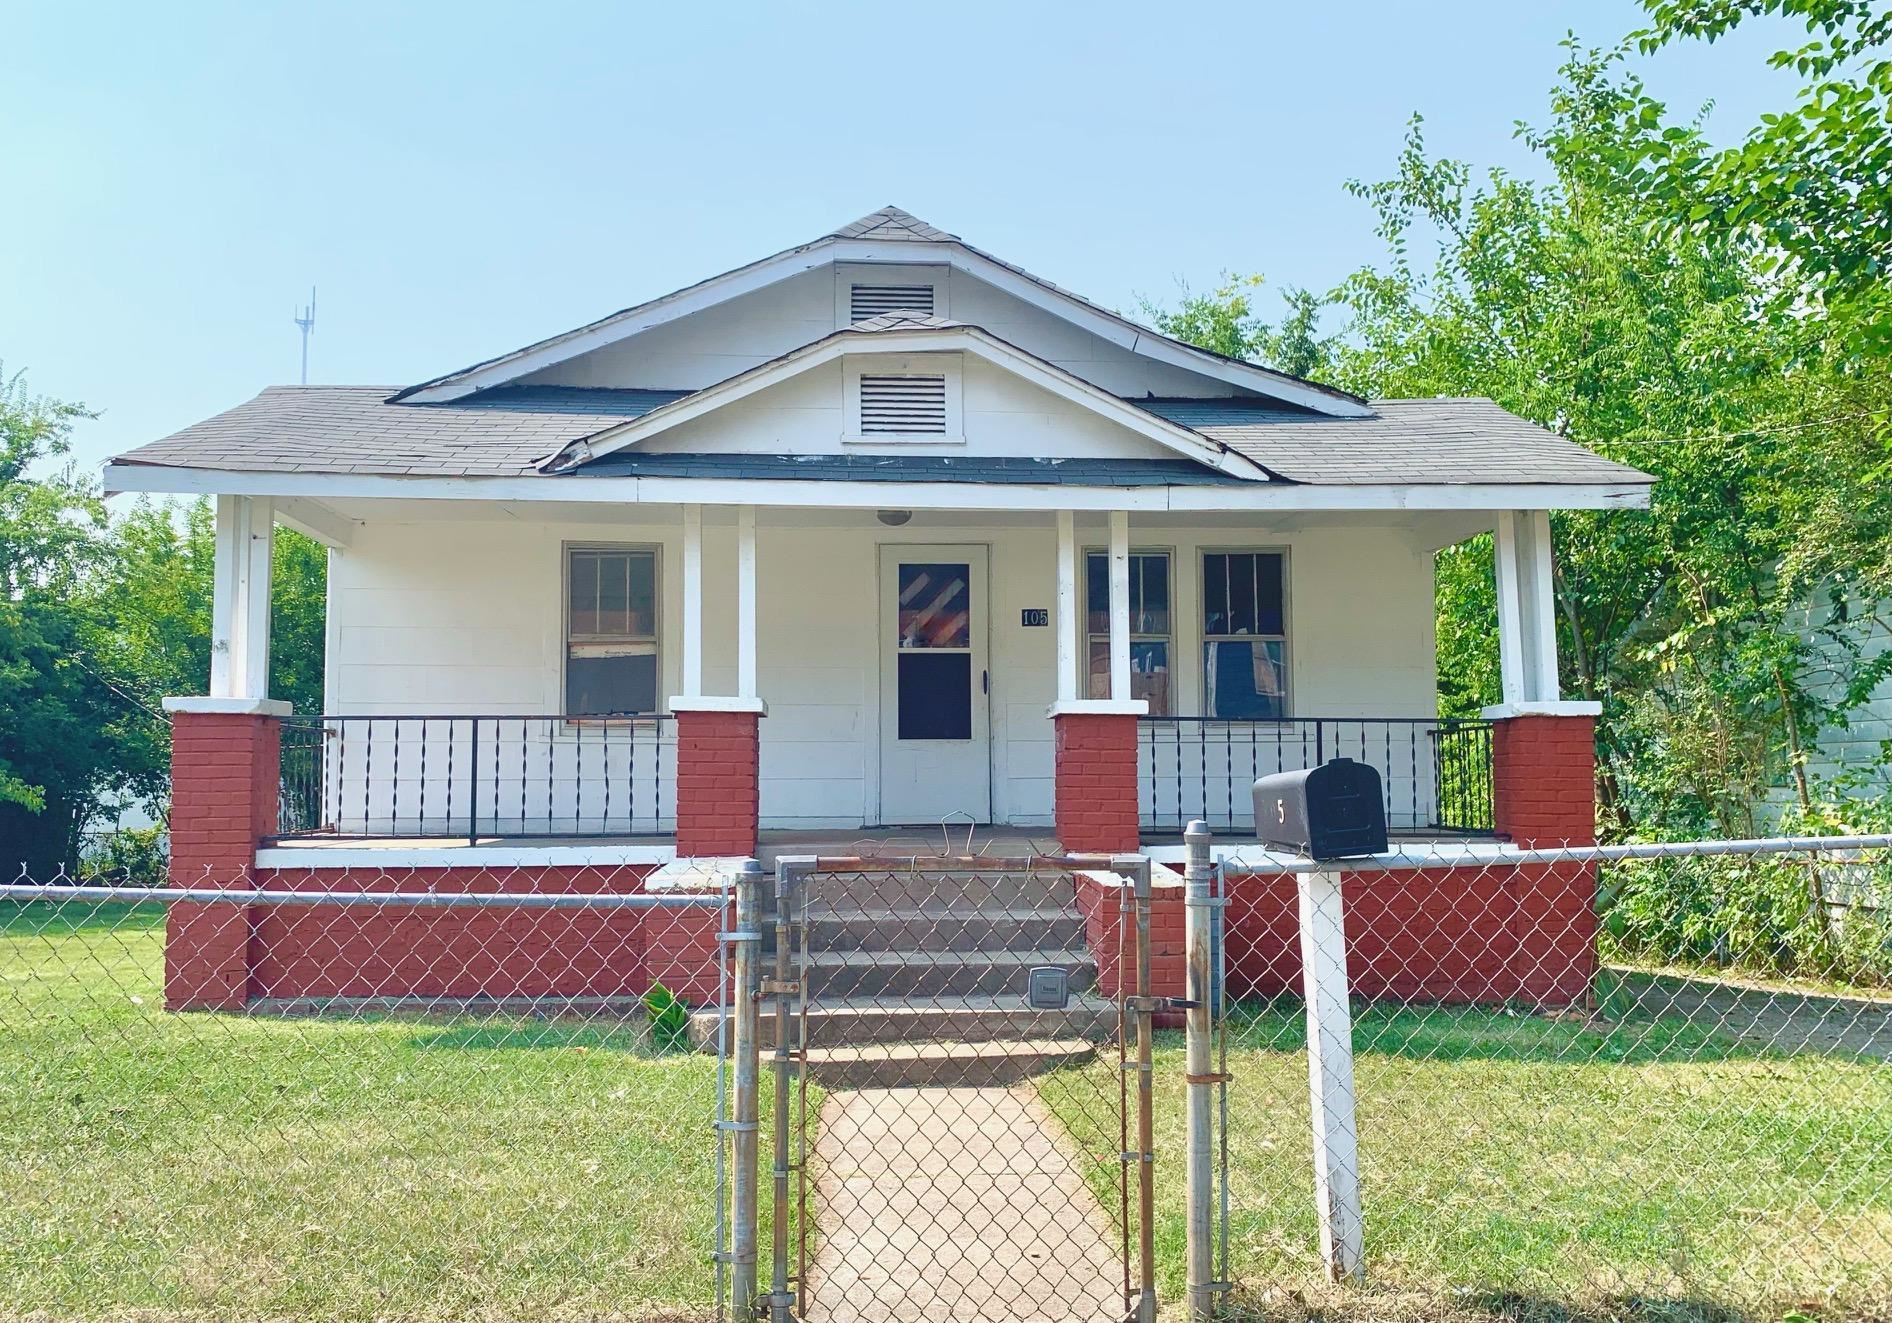 Photo of 105 Oglewood Ave, Knoxville, TN 37917 (MLS # 1162209)